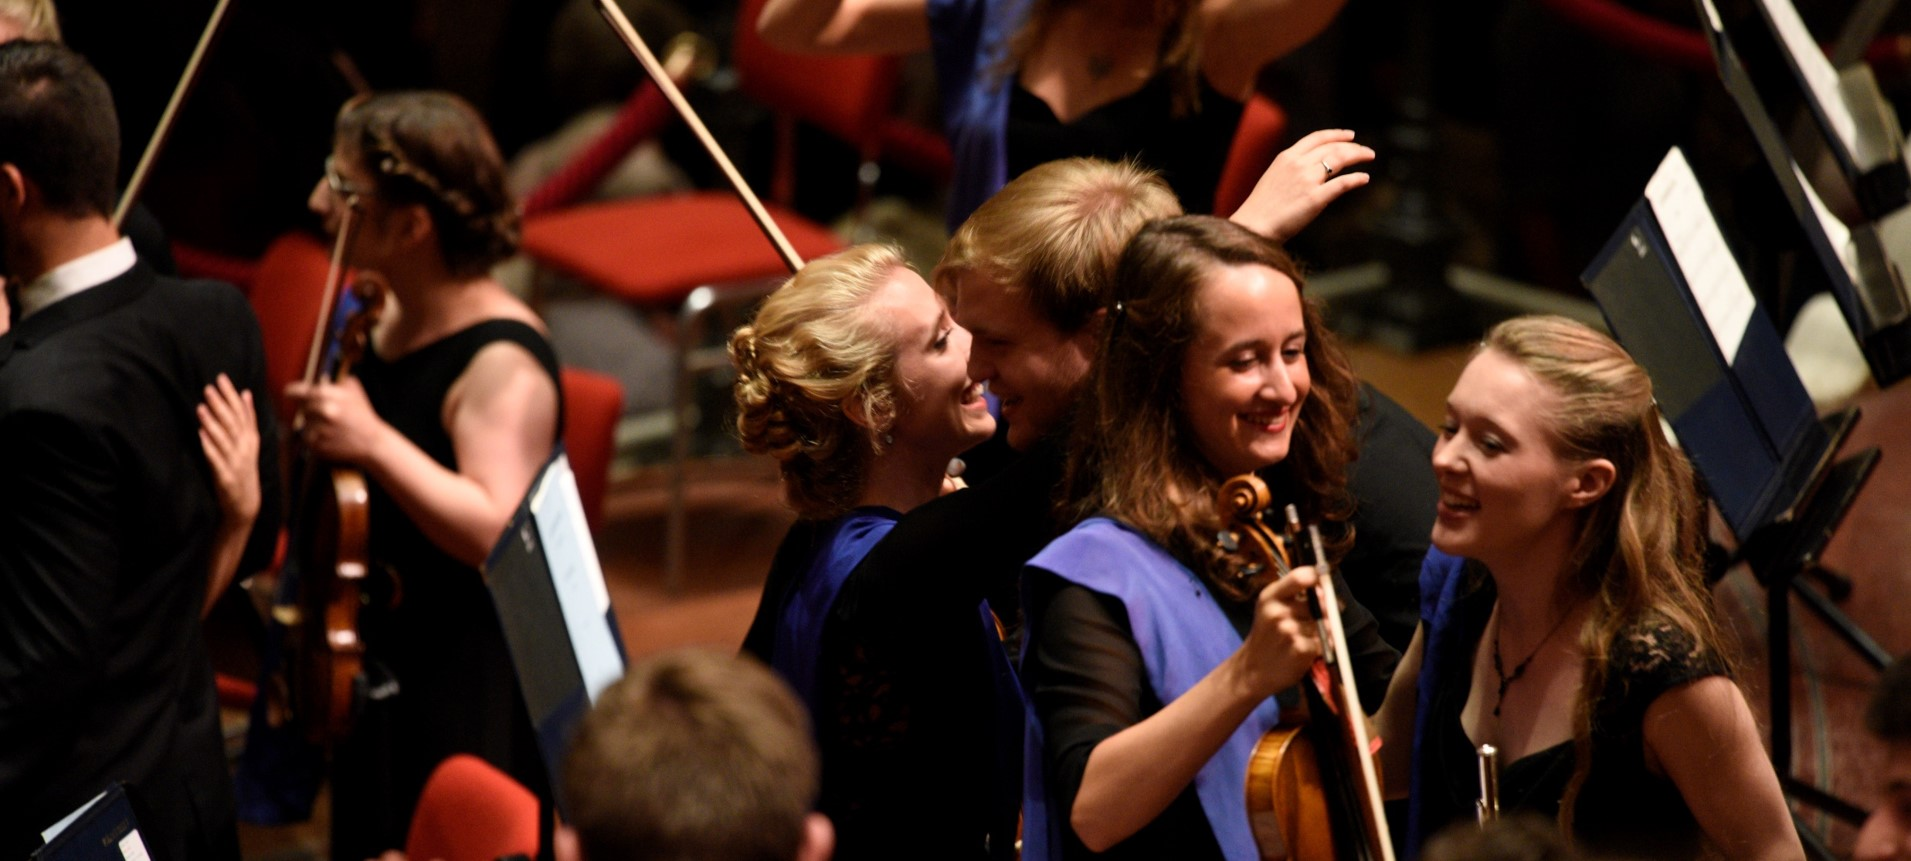 Every year the EUYO auditions thousands of hopeful young musicians from all 28 EU member states to produce an EU Orchestra with the highest possible level of excellence